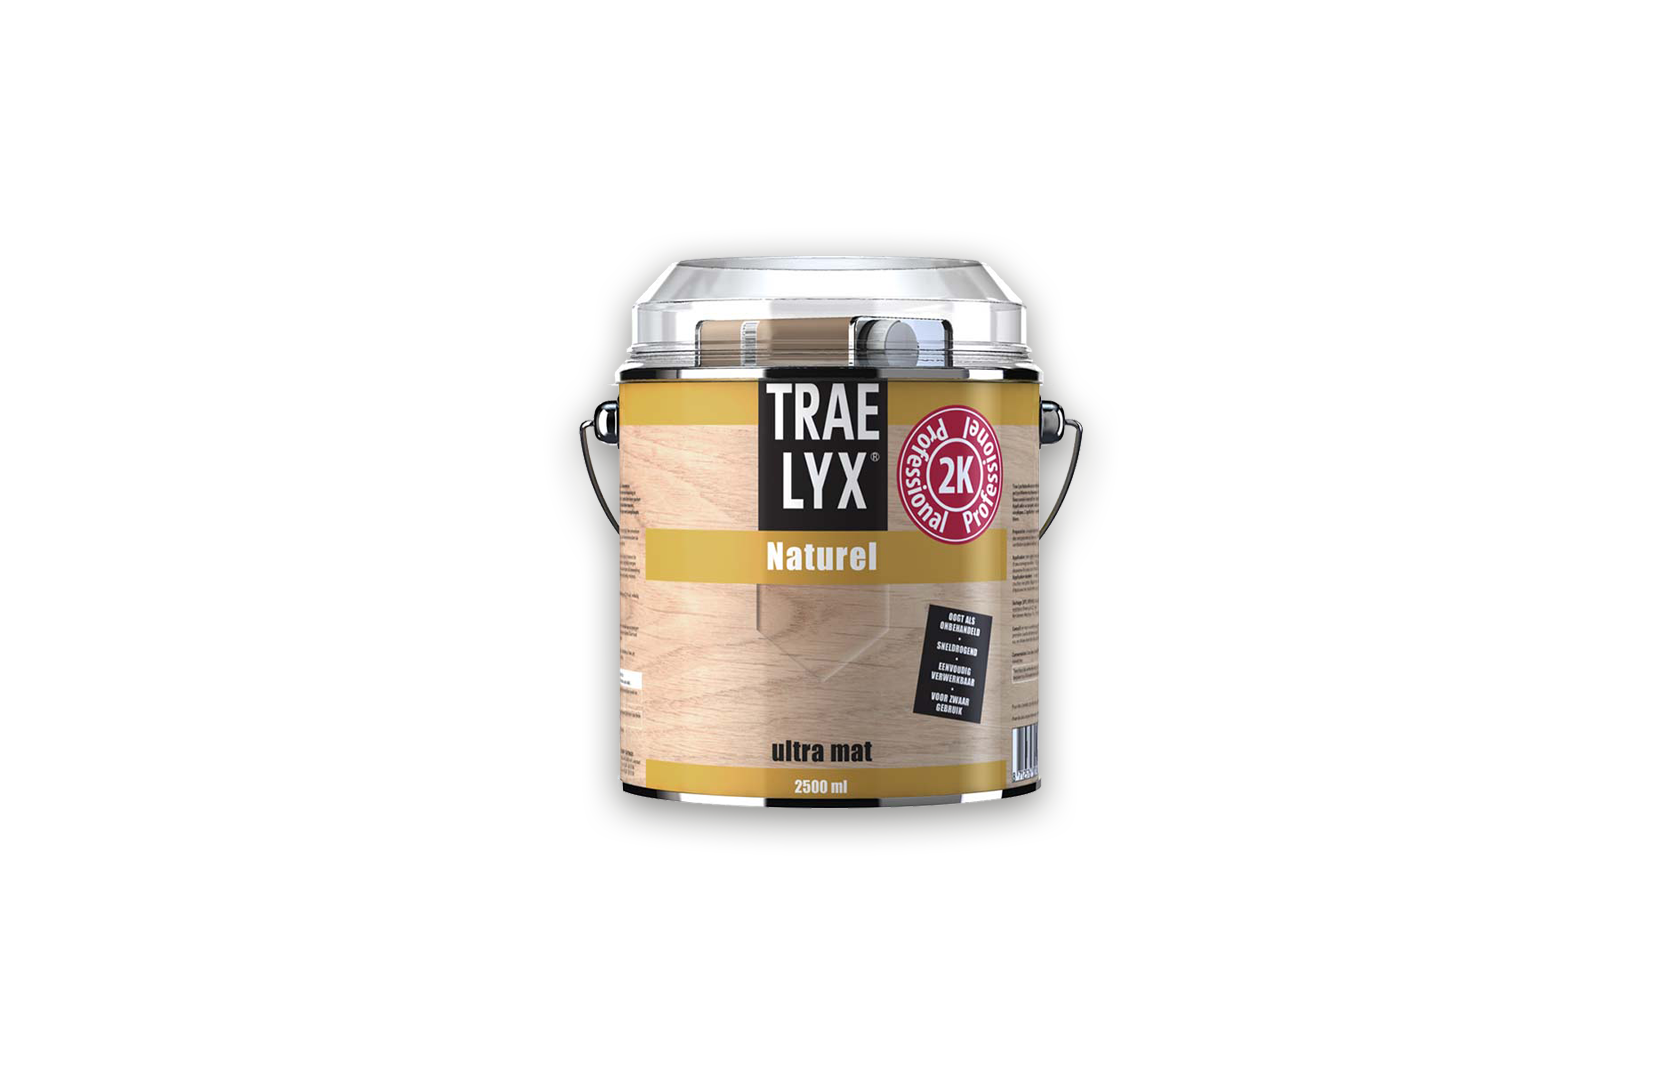 Trae Lyx natural